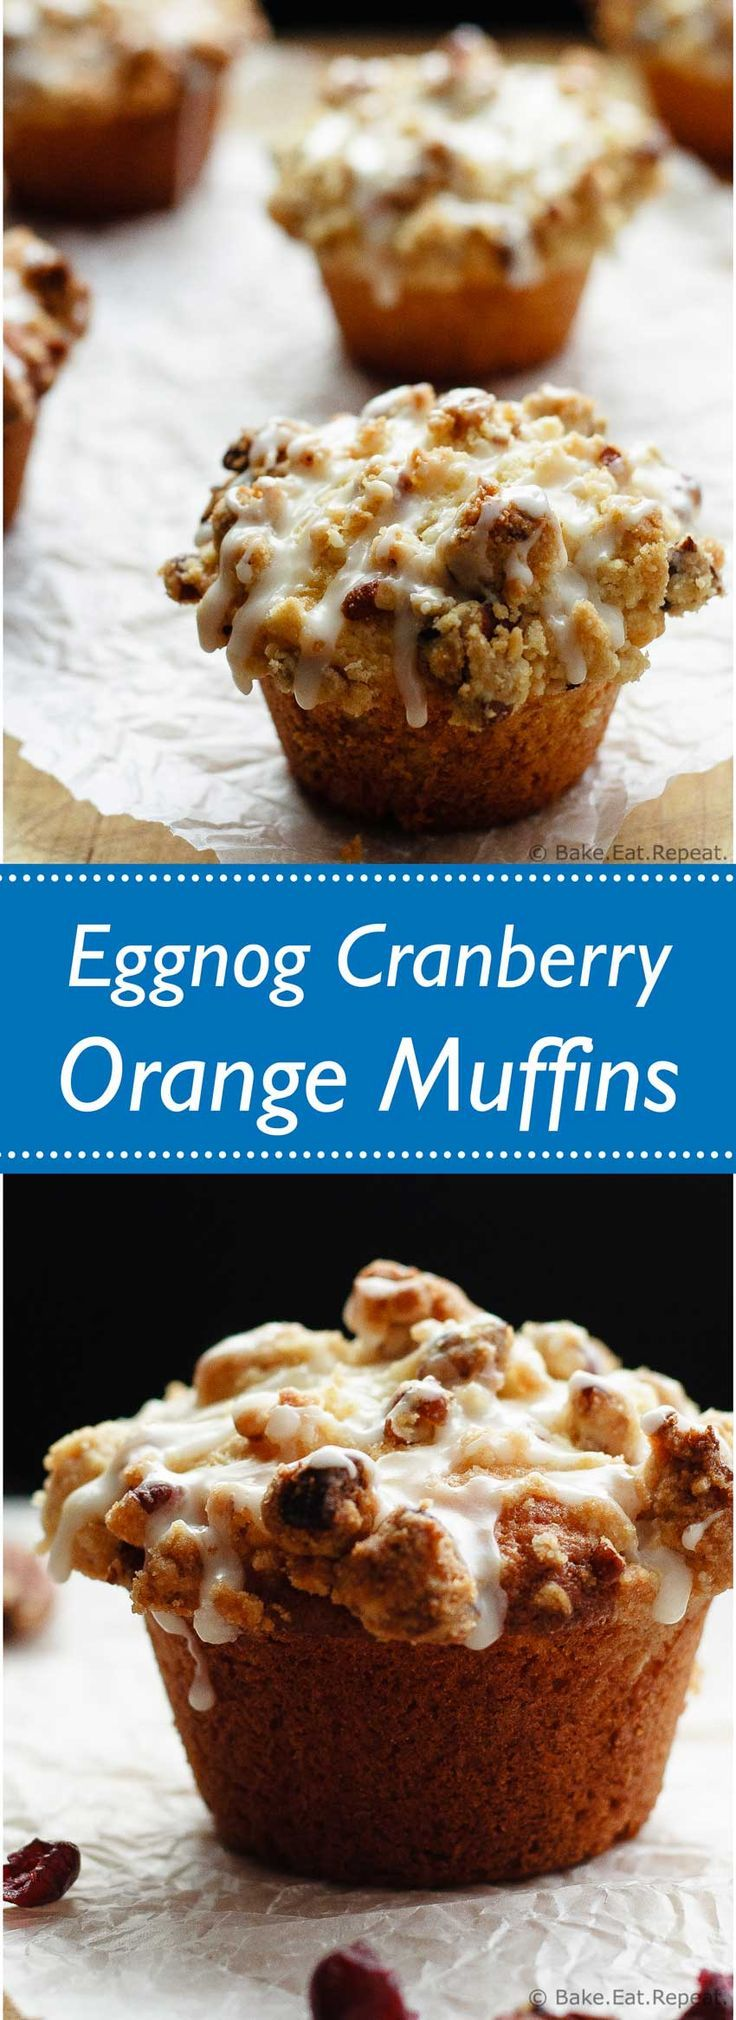 Eggnog Cranberry Orange Muffins - Tender, flavourful, amazing eggnog cranberry orange muffins - perfect for your Christmas breakfast plans!